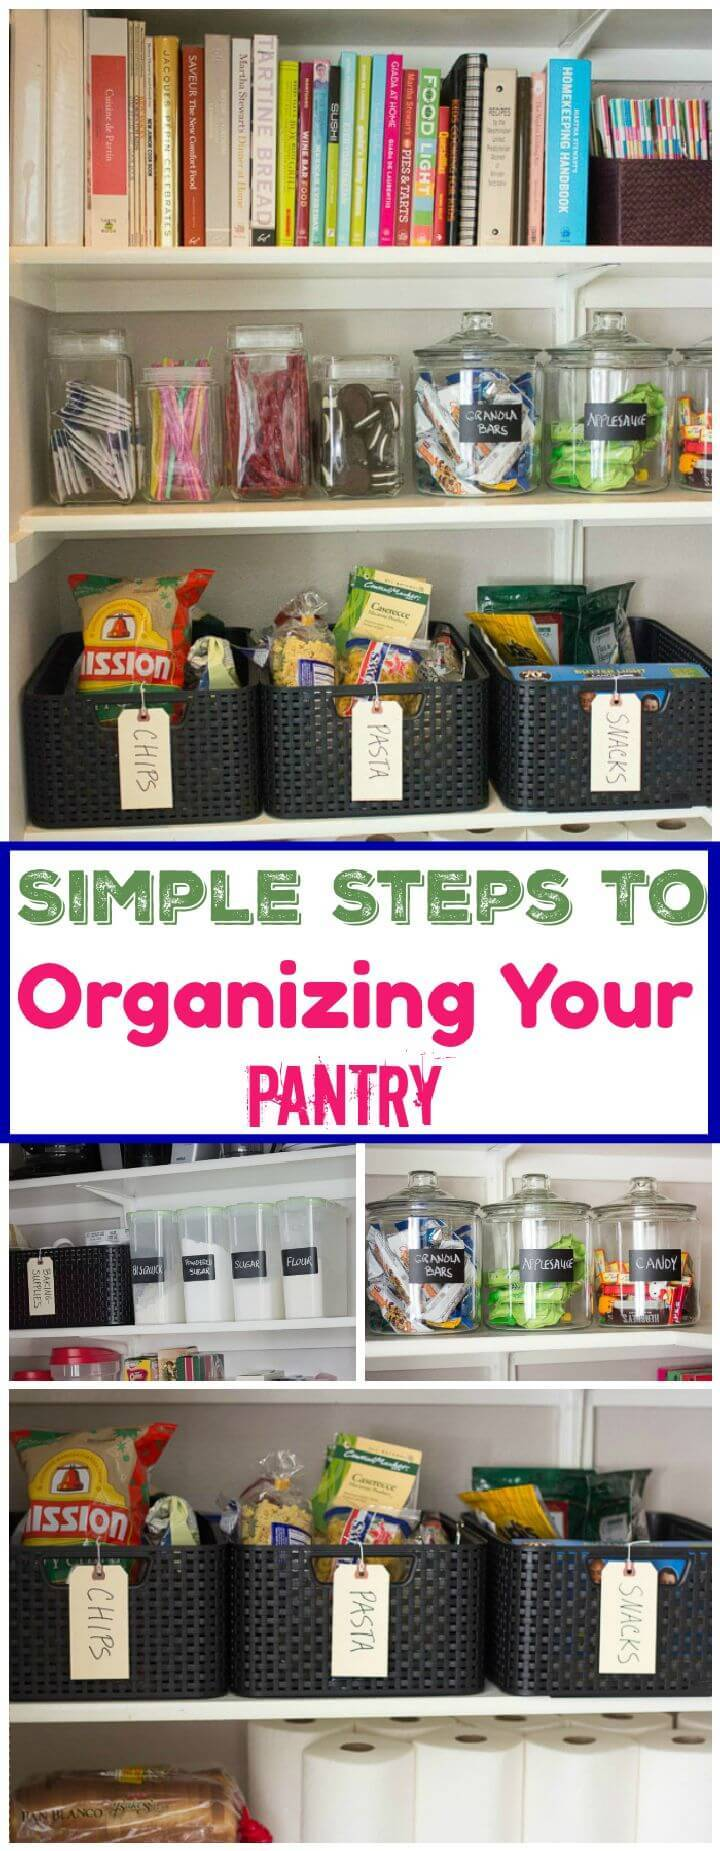 Simple Steps to Organizing Your Pantry